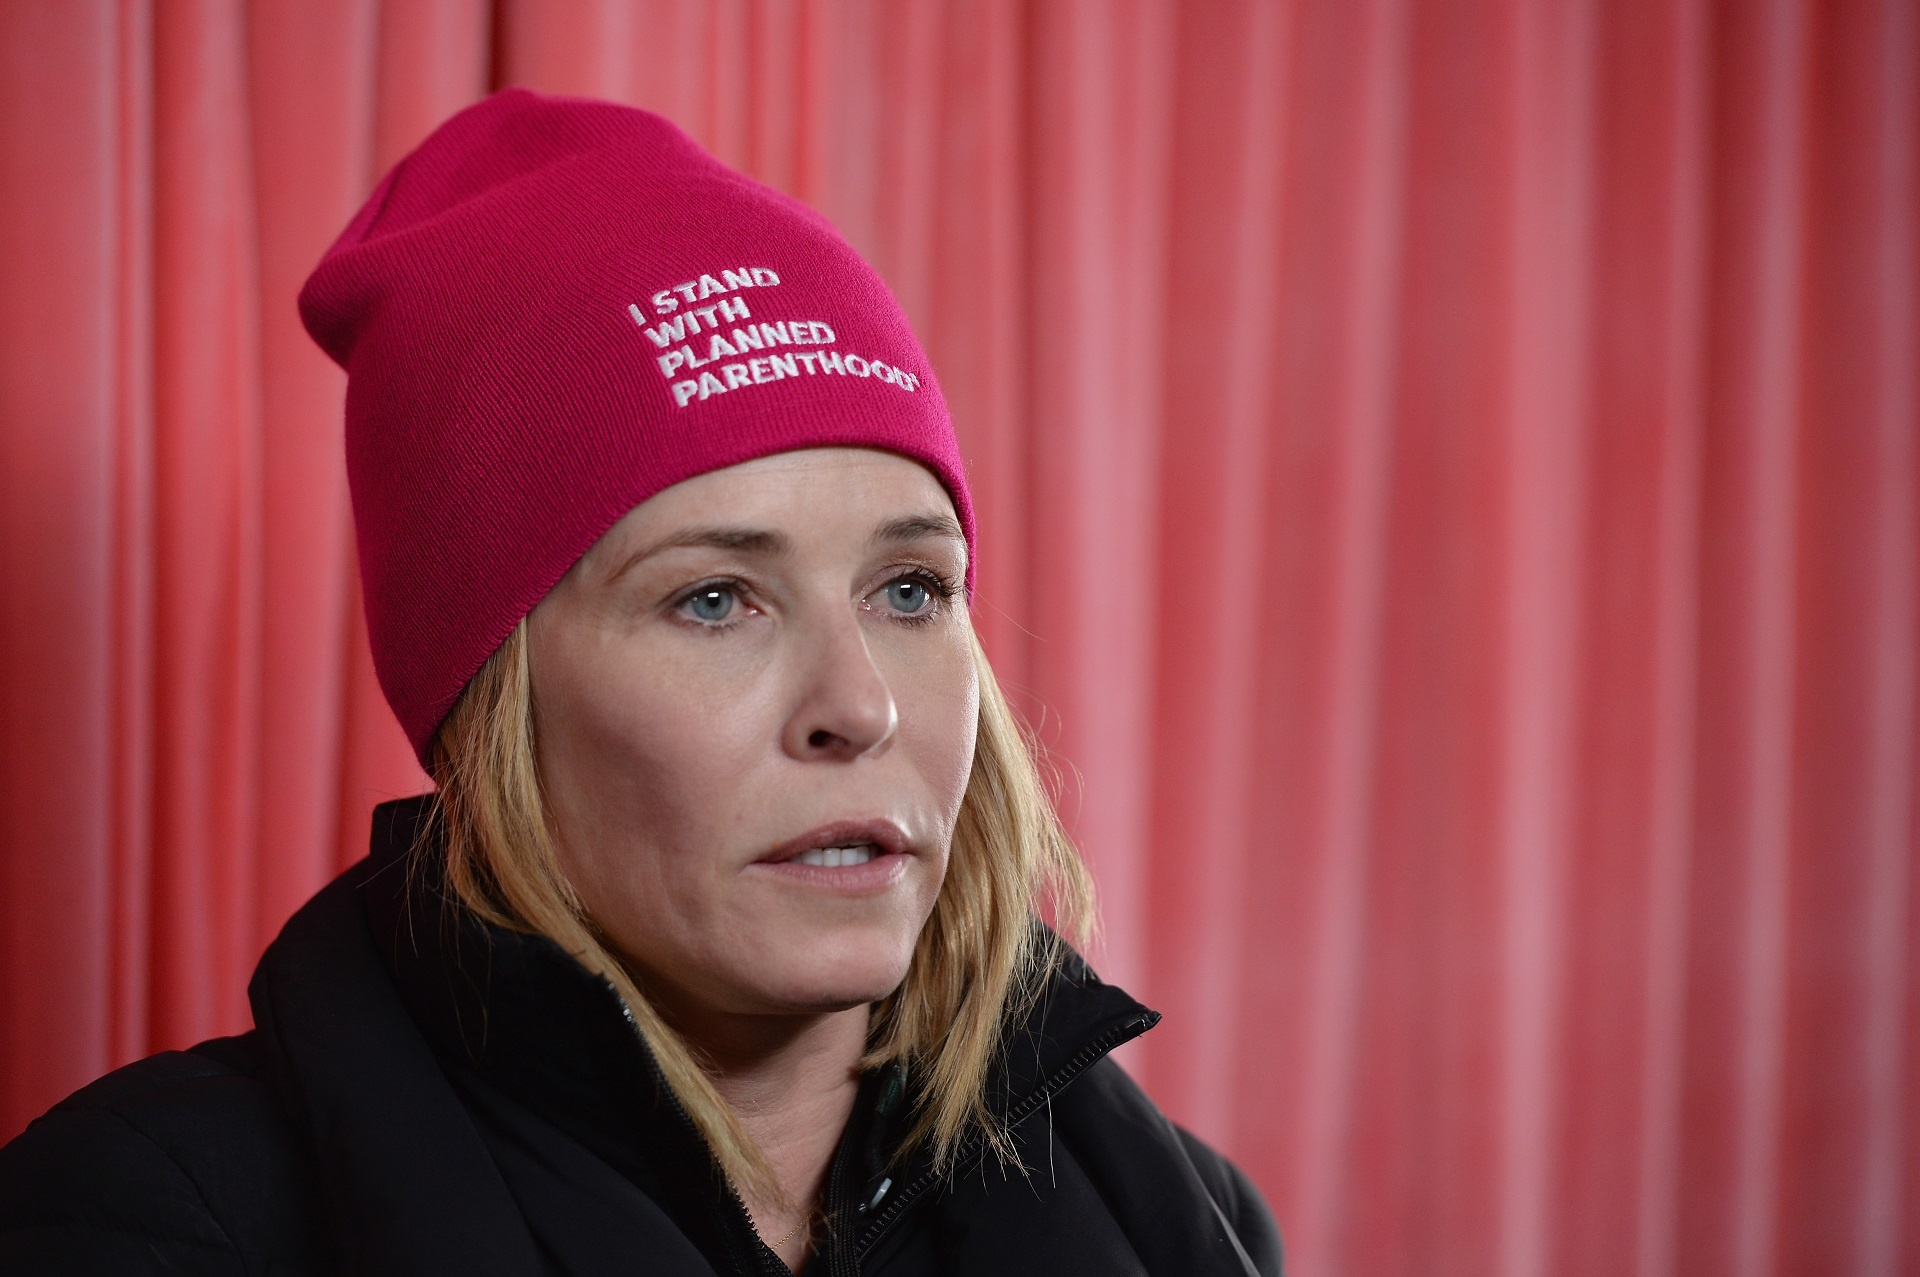 Chelsea Handler gets a dose of truth after trying to dunk on President Trump for the 'color' of the 'criminals' he granted clemency